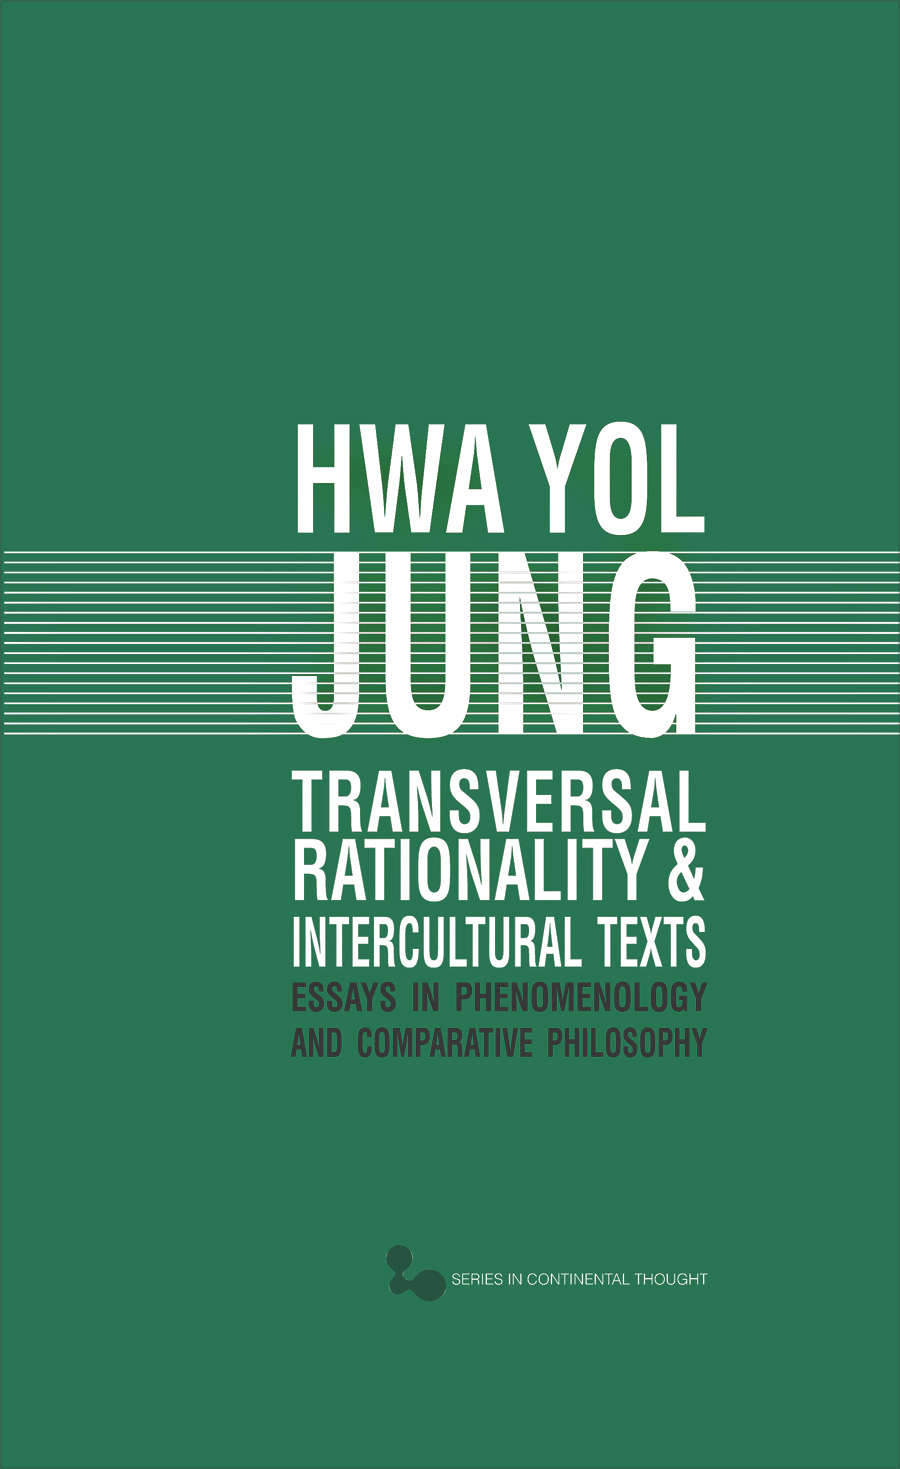 the tenets of cognitive existentialism middot ohio university press cover of transversal rationality and intercultural texts